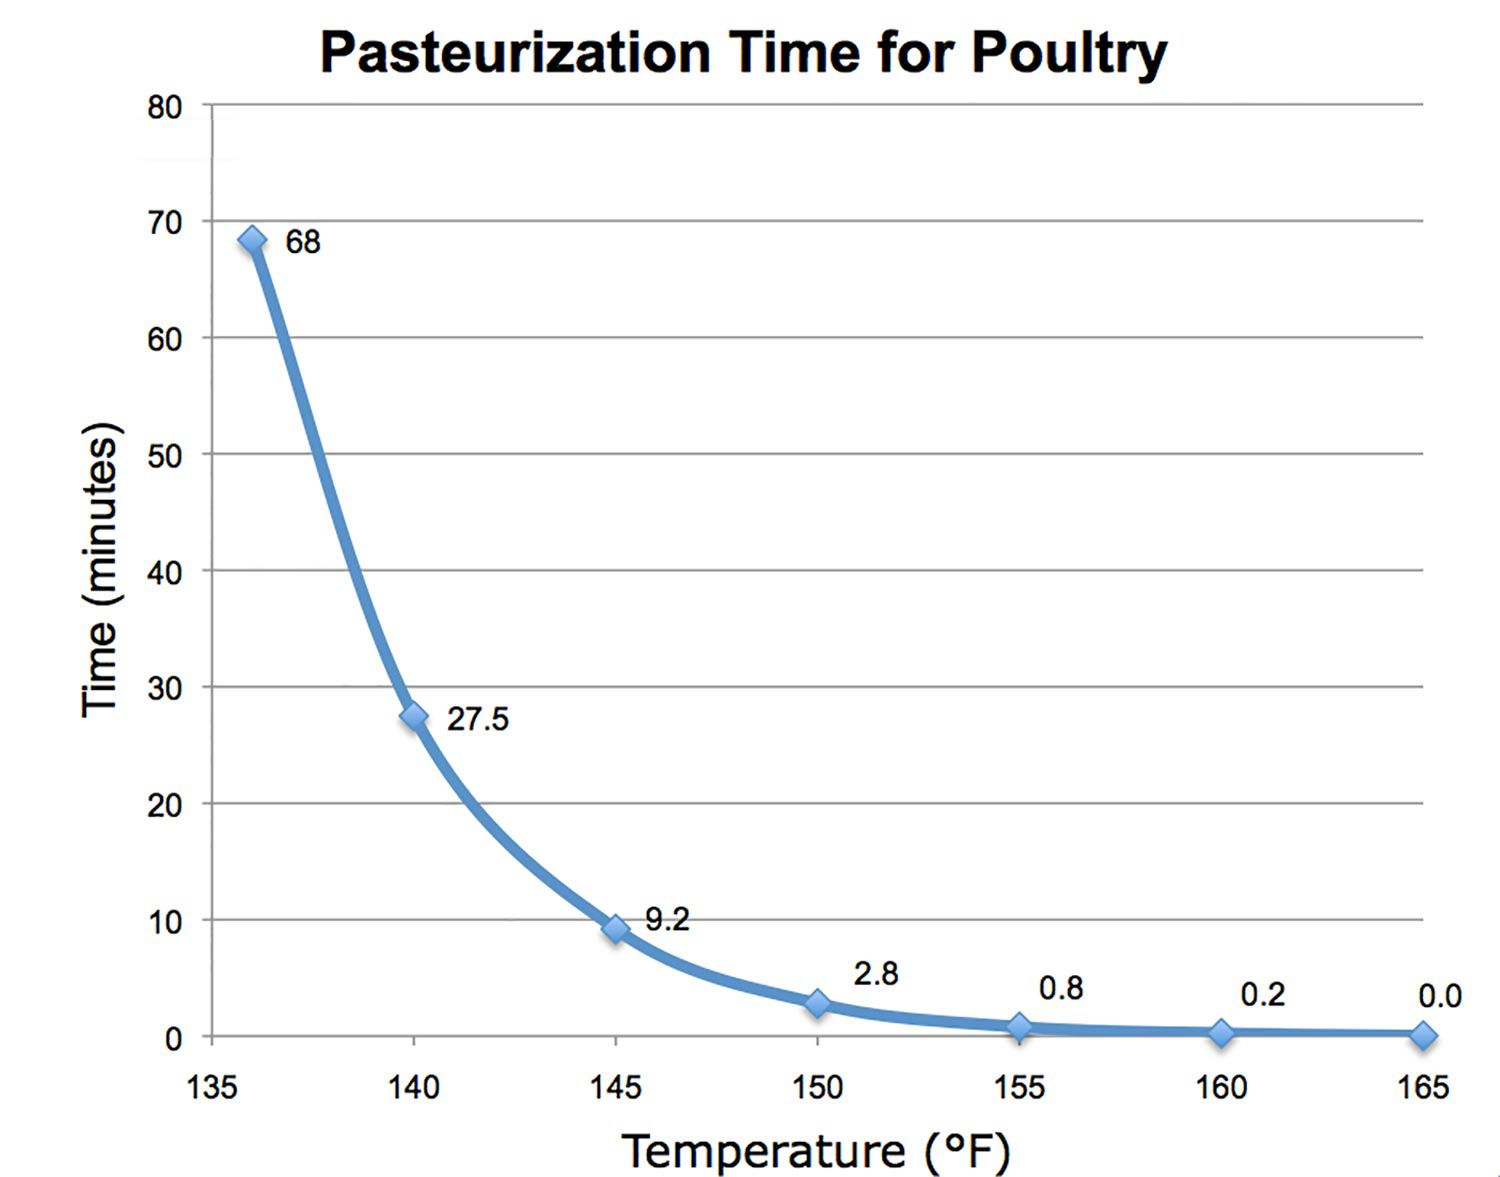 Chart indicating pasteurization time for poultry based on temperature at which poultry is cooked and time it is cooked for